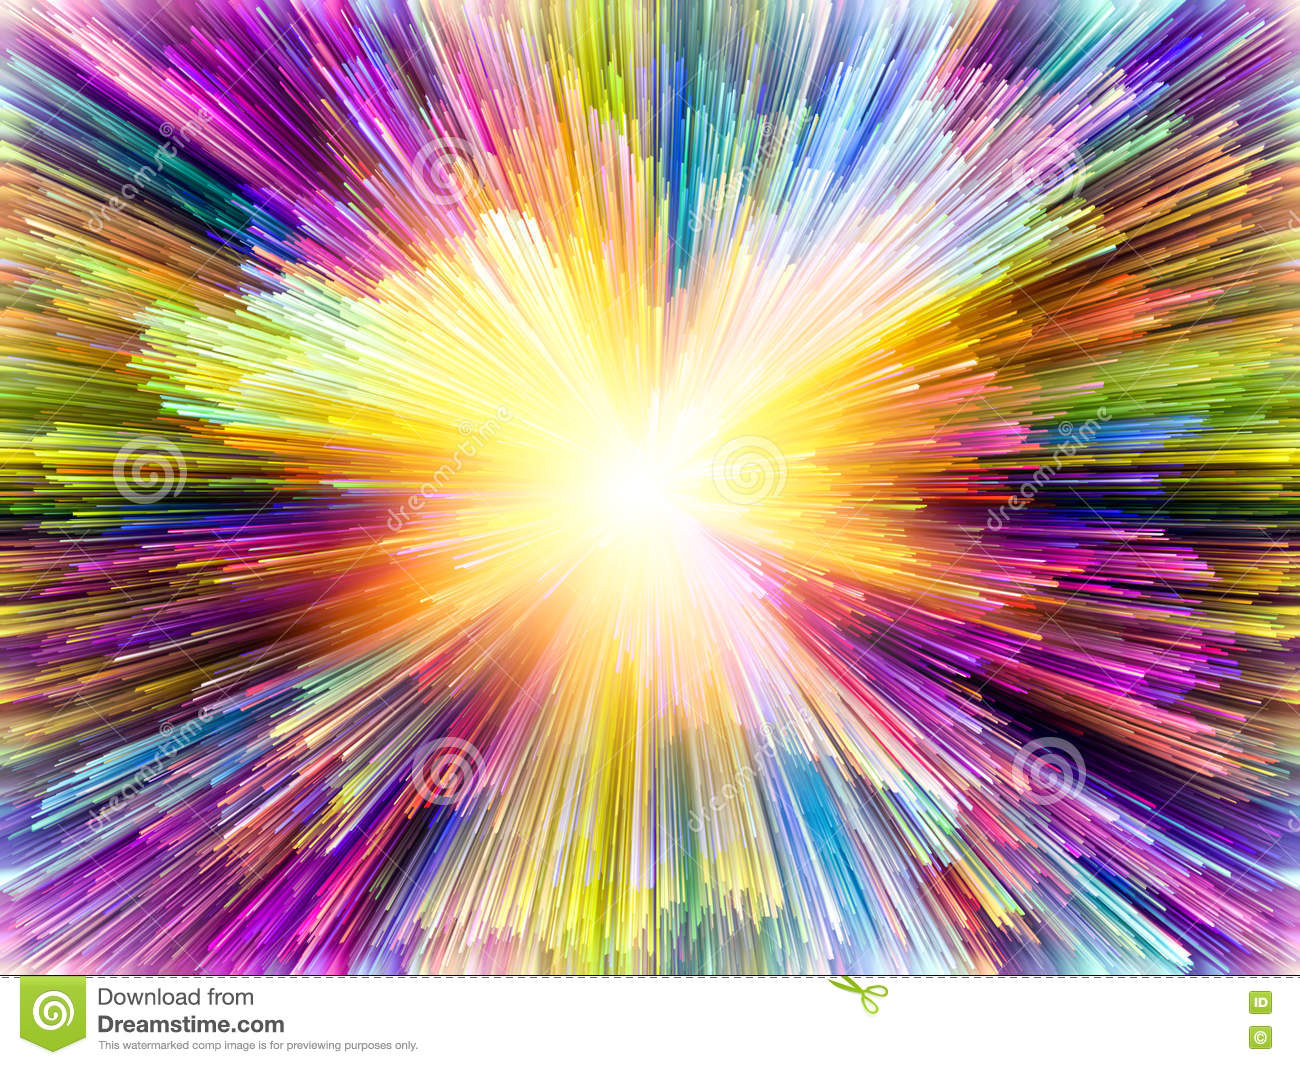 Energy Of Colors Stock Illustration - Image: 72475922